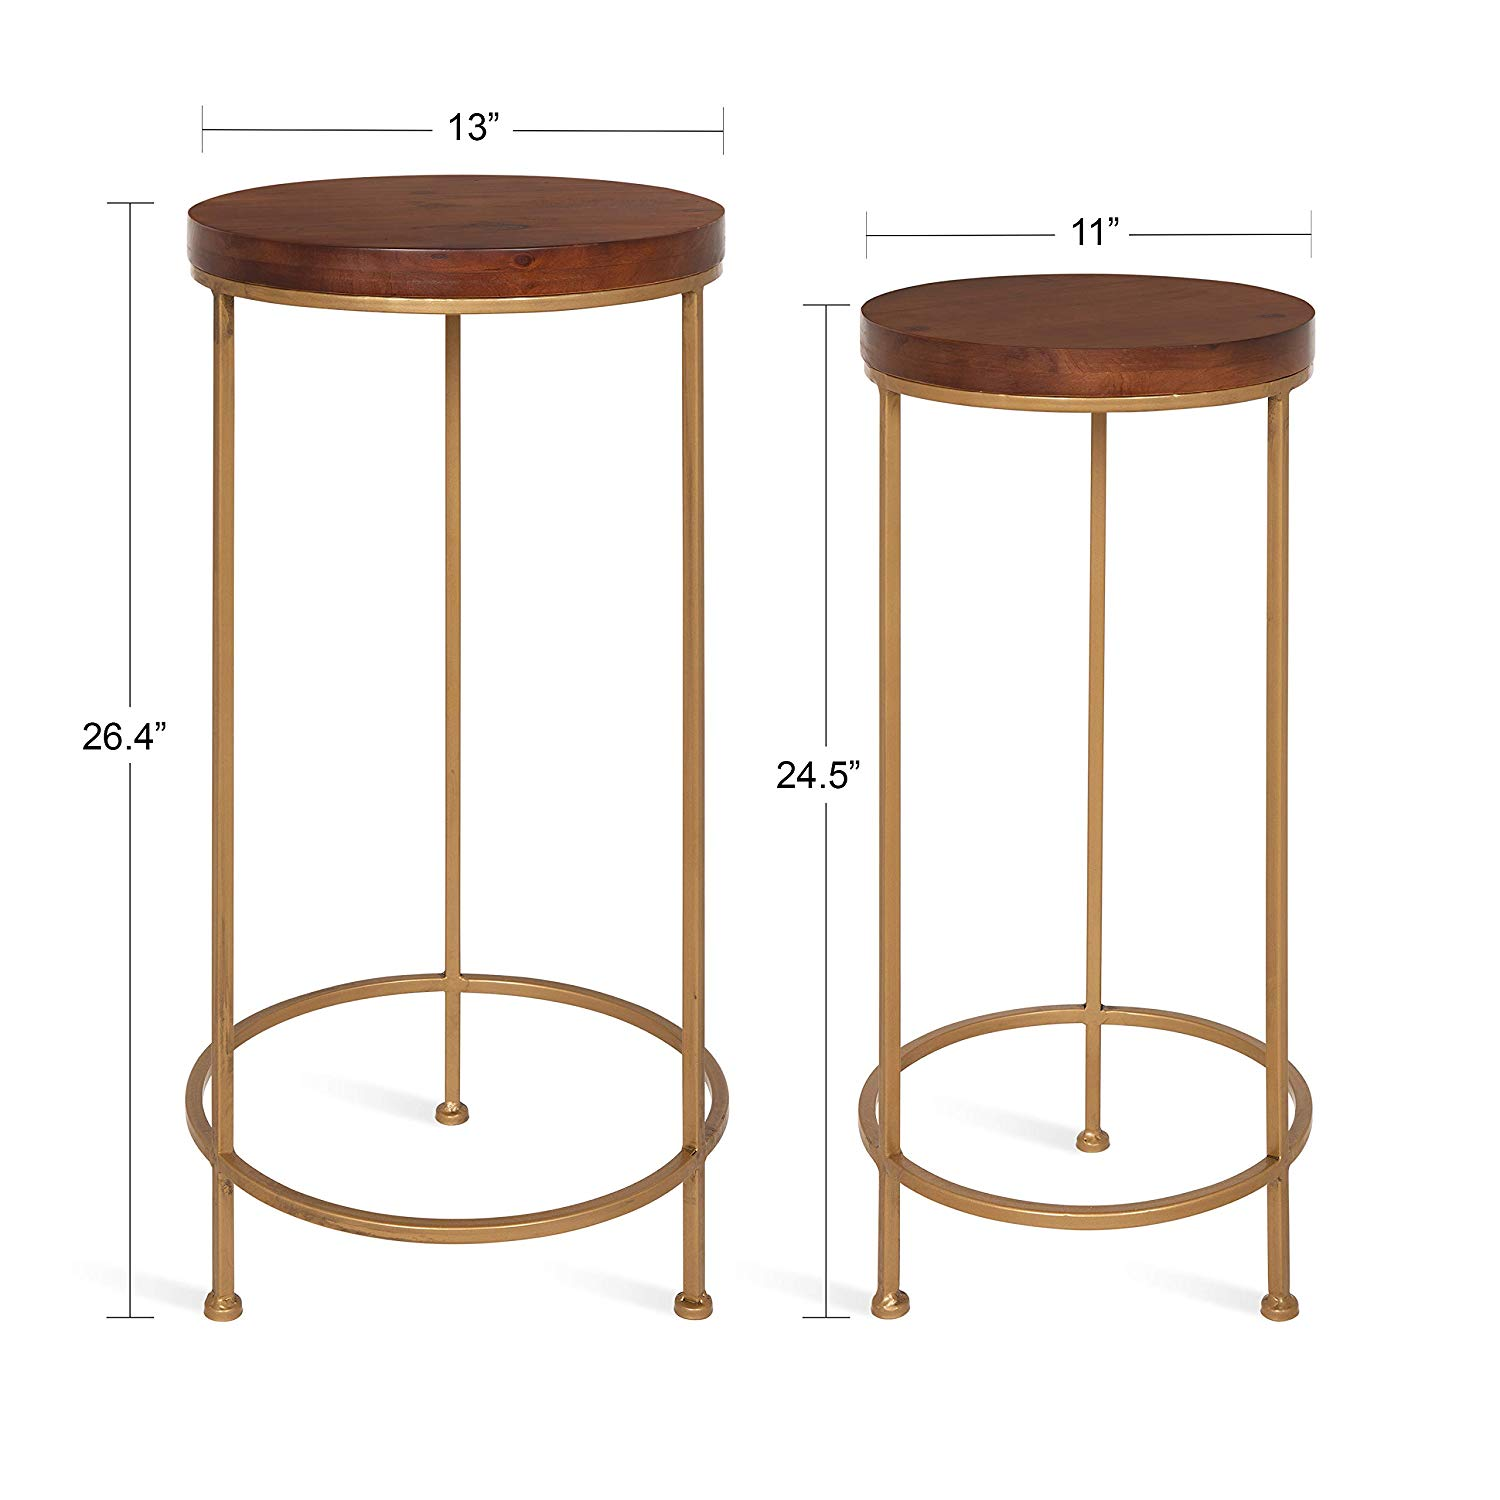 kate and laurel espada metal wood nesting tables gold accent table set piece walnut top with base kitchen dining tall sofa solid corner timber trestle legs round quilted toppers